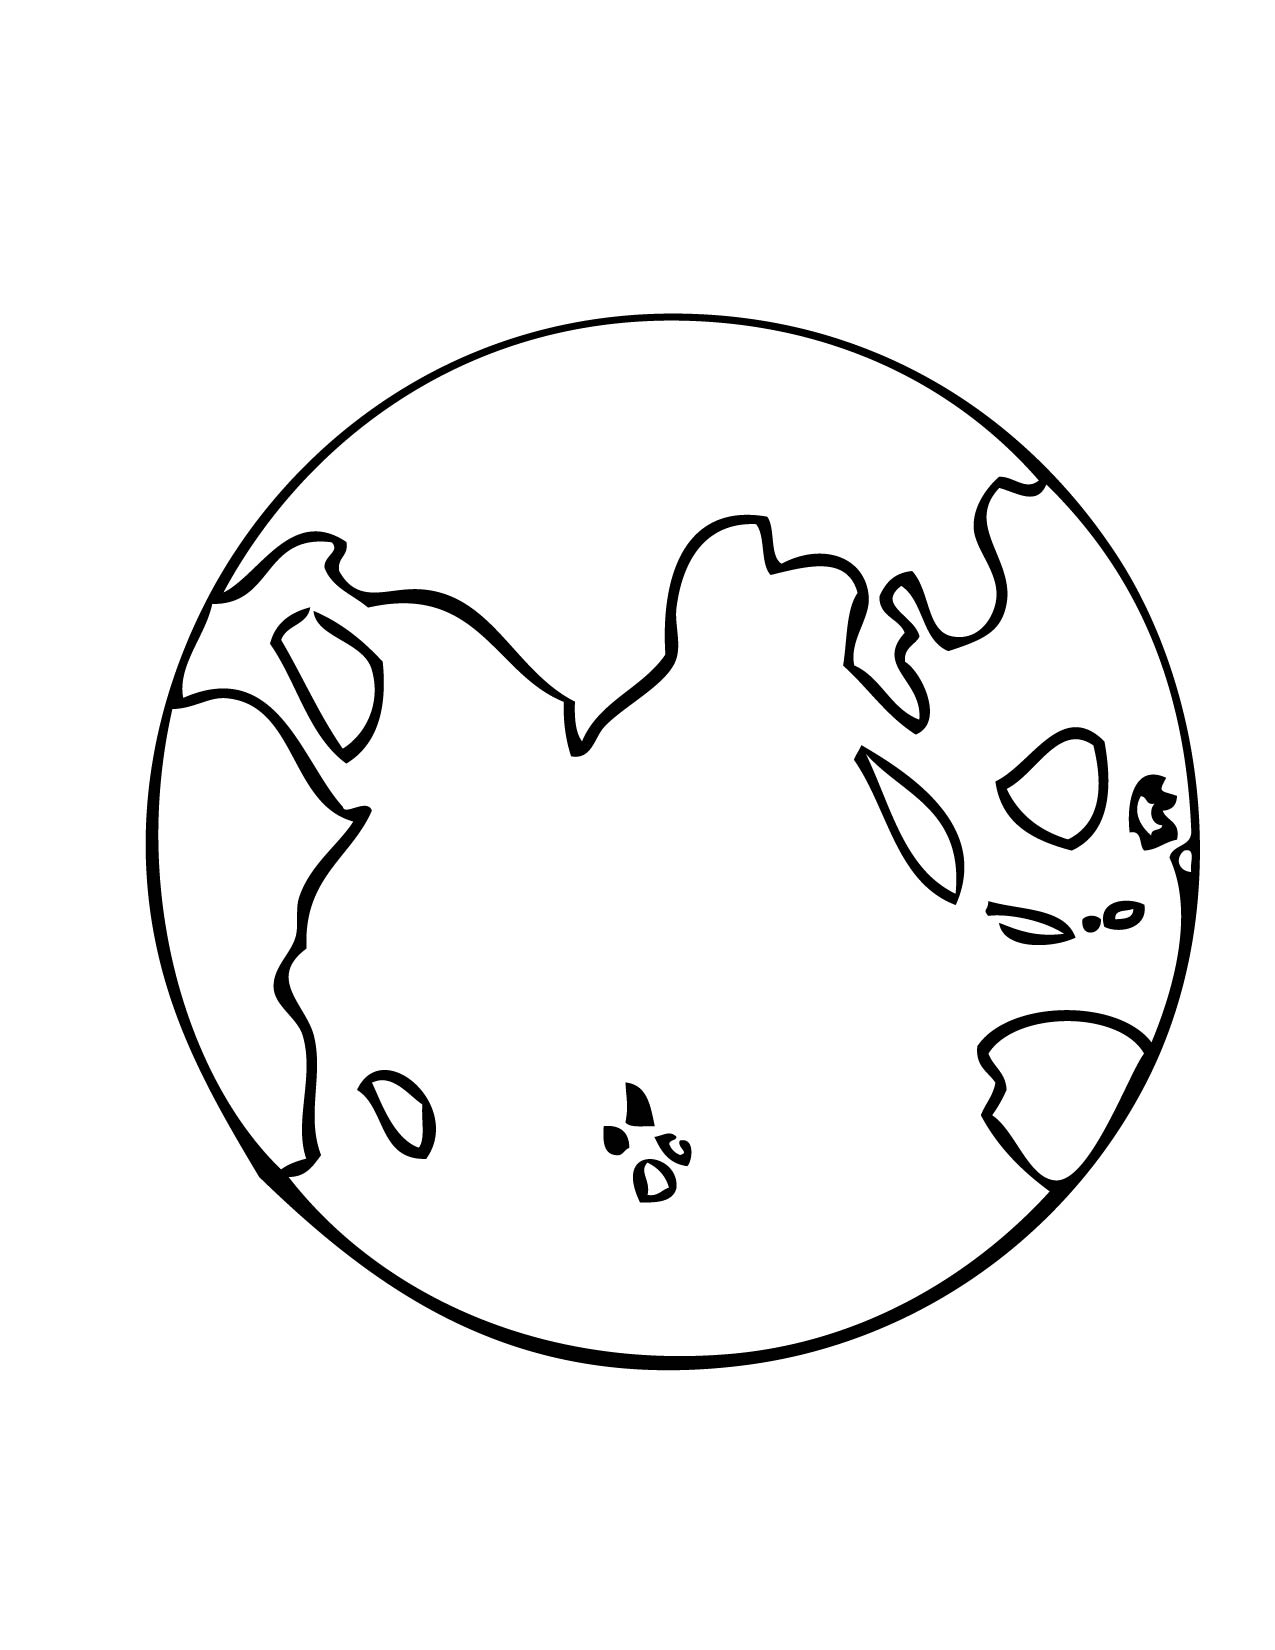 Earth Printable